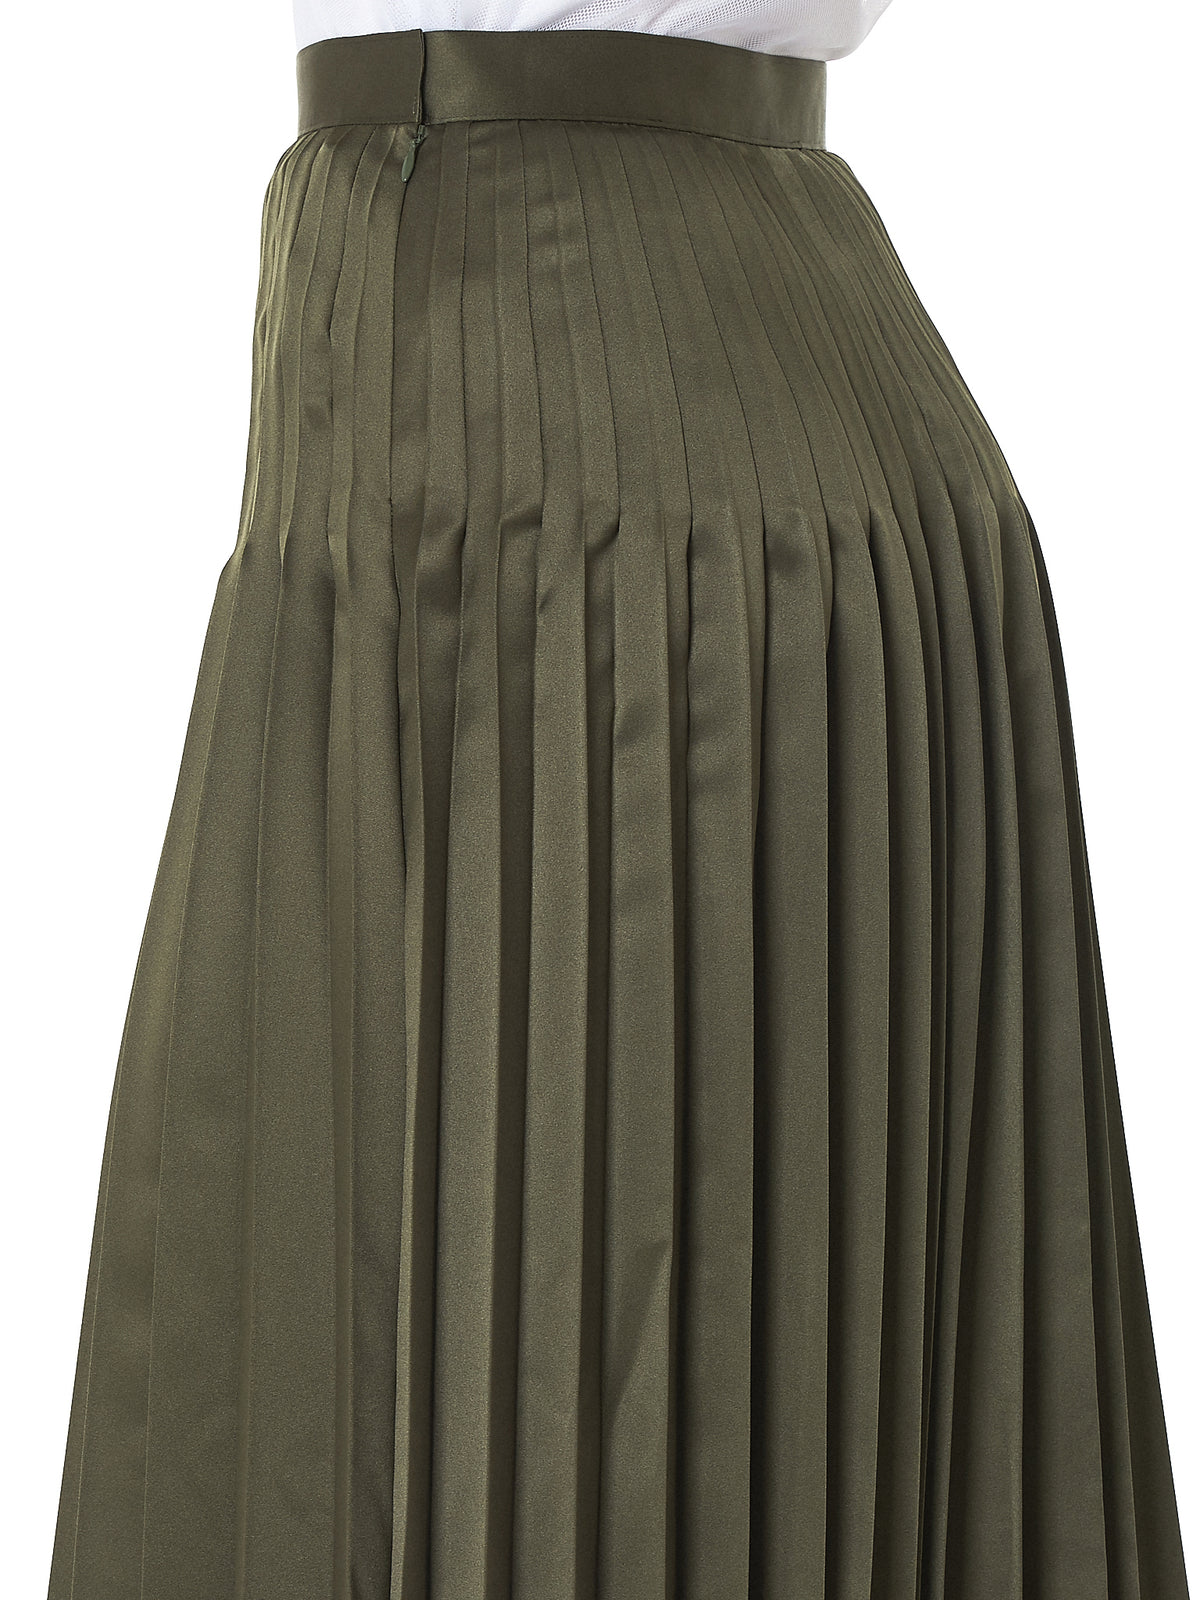 Junya Watanabe Pleated Skirt - Hlorenzo Detail 2